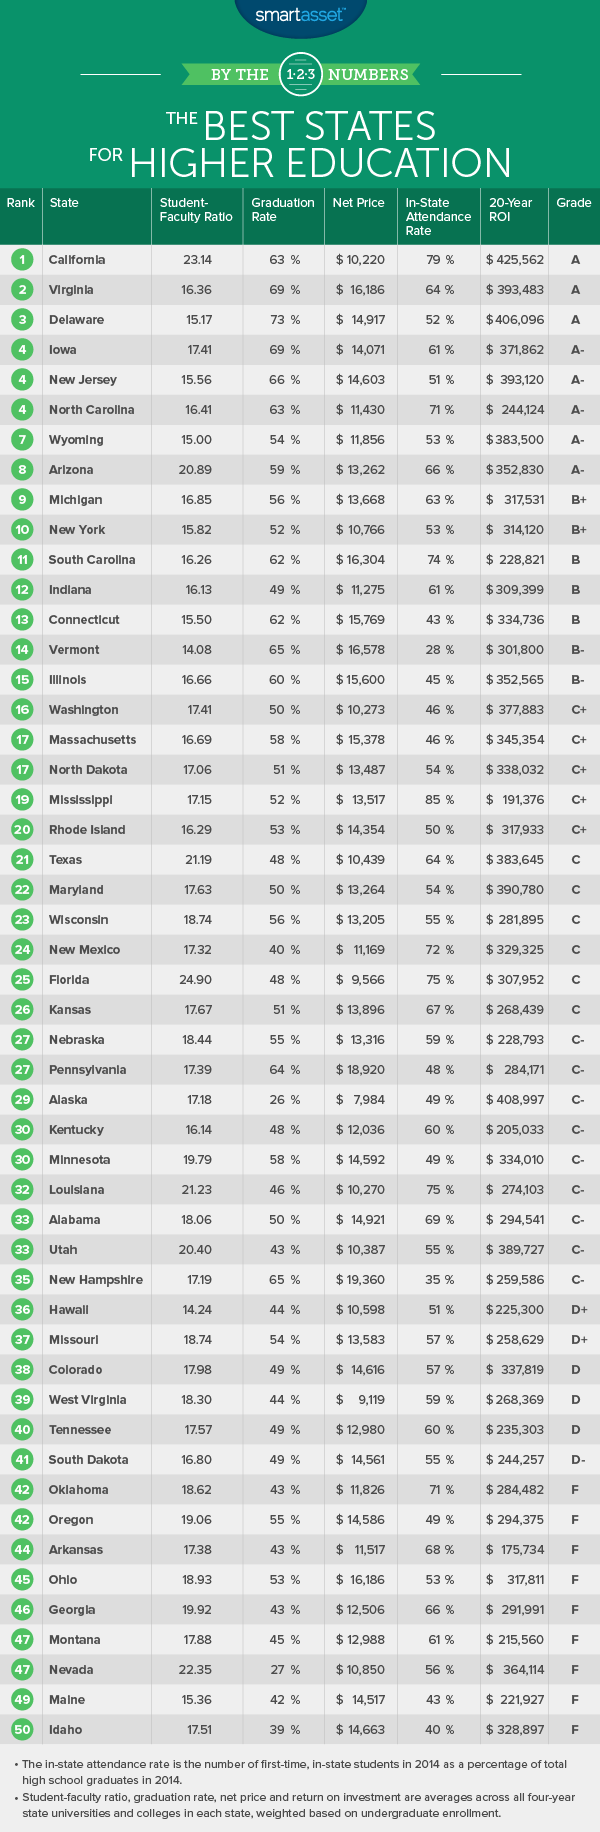 The Best States for Higher Education in 2016